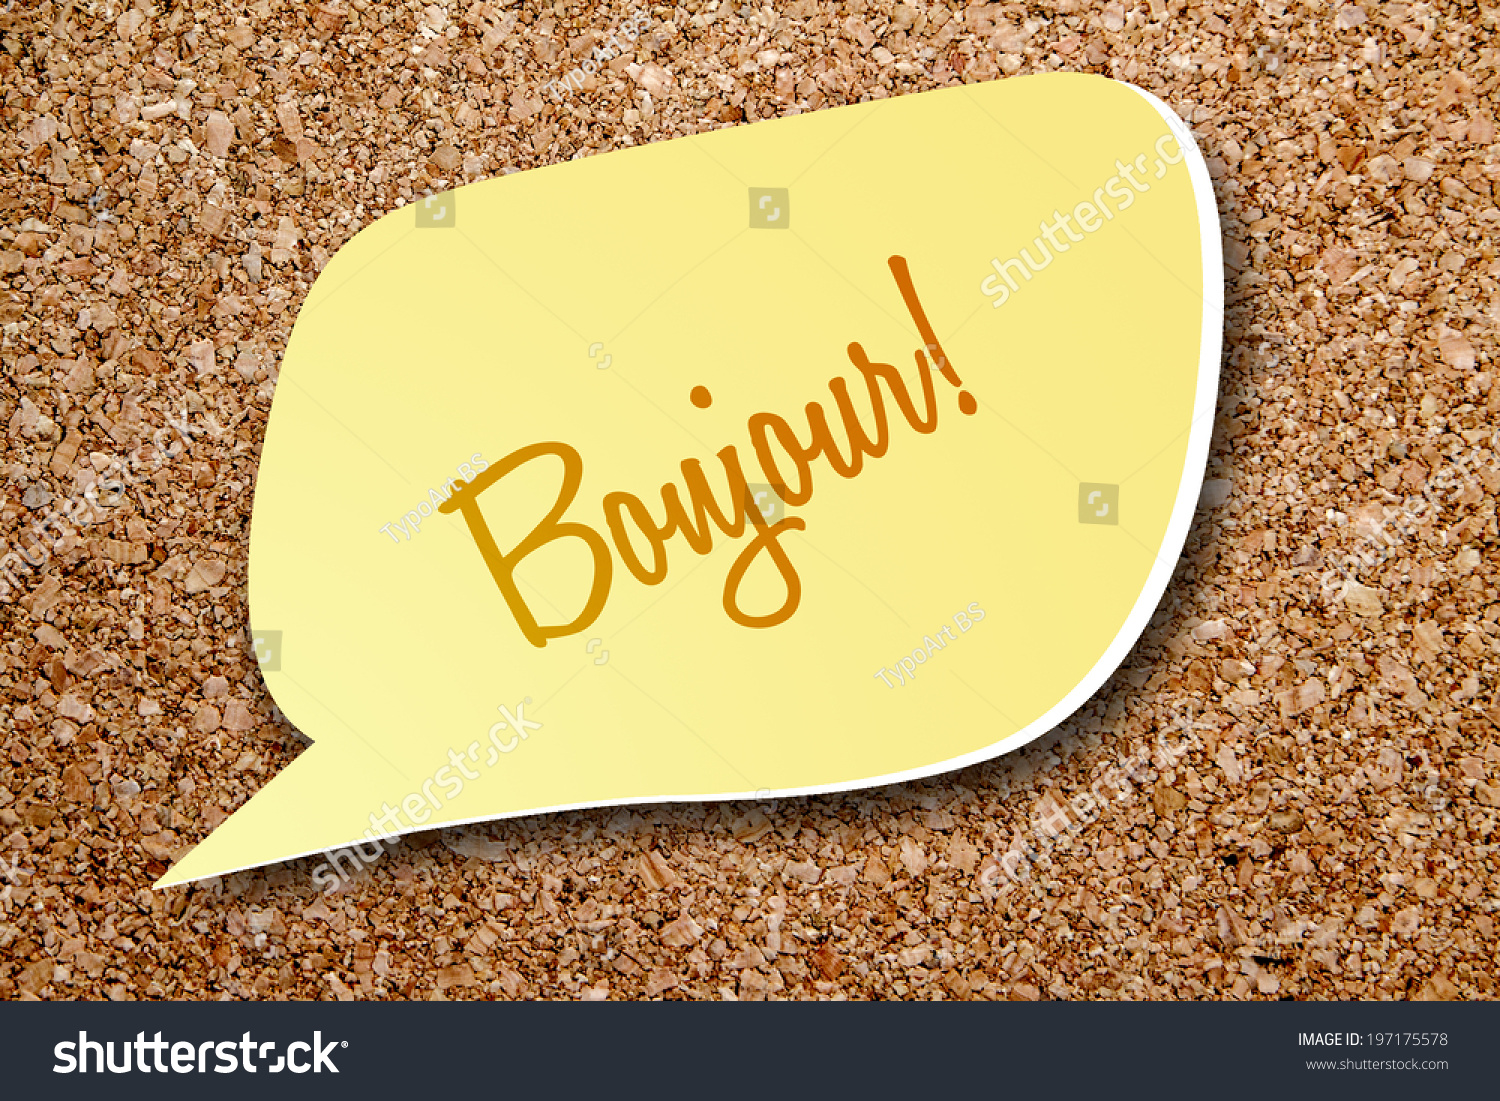 Hi Good Morning In German : Say good morning french stock photo shutterstock